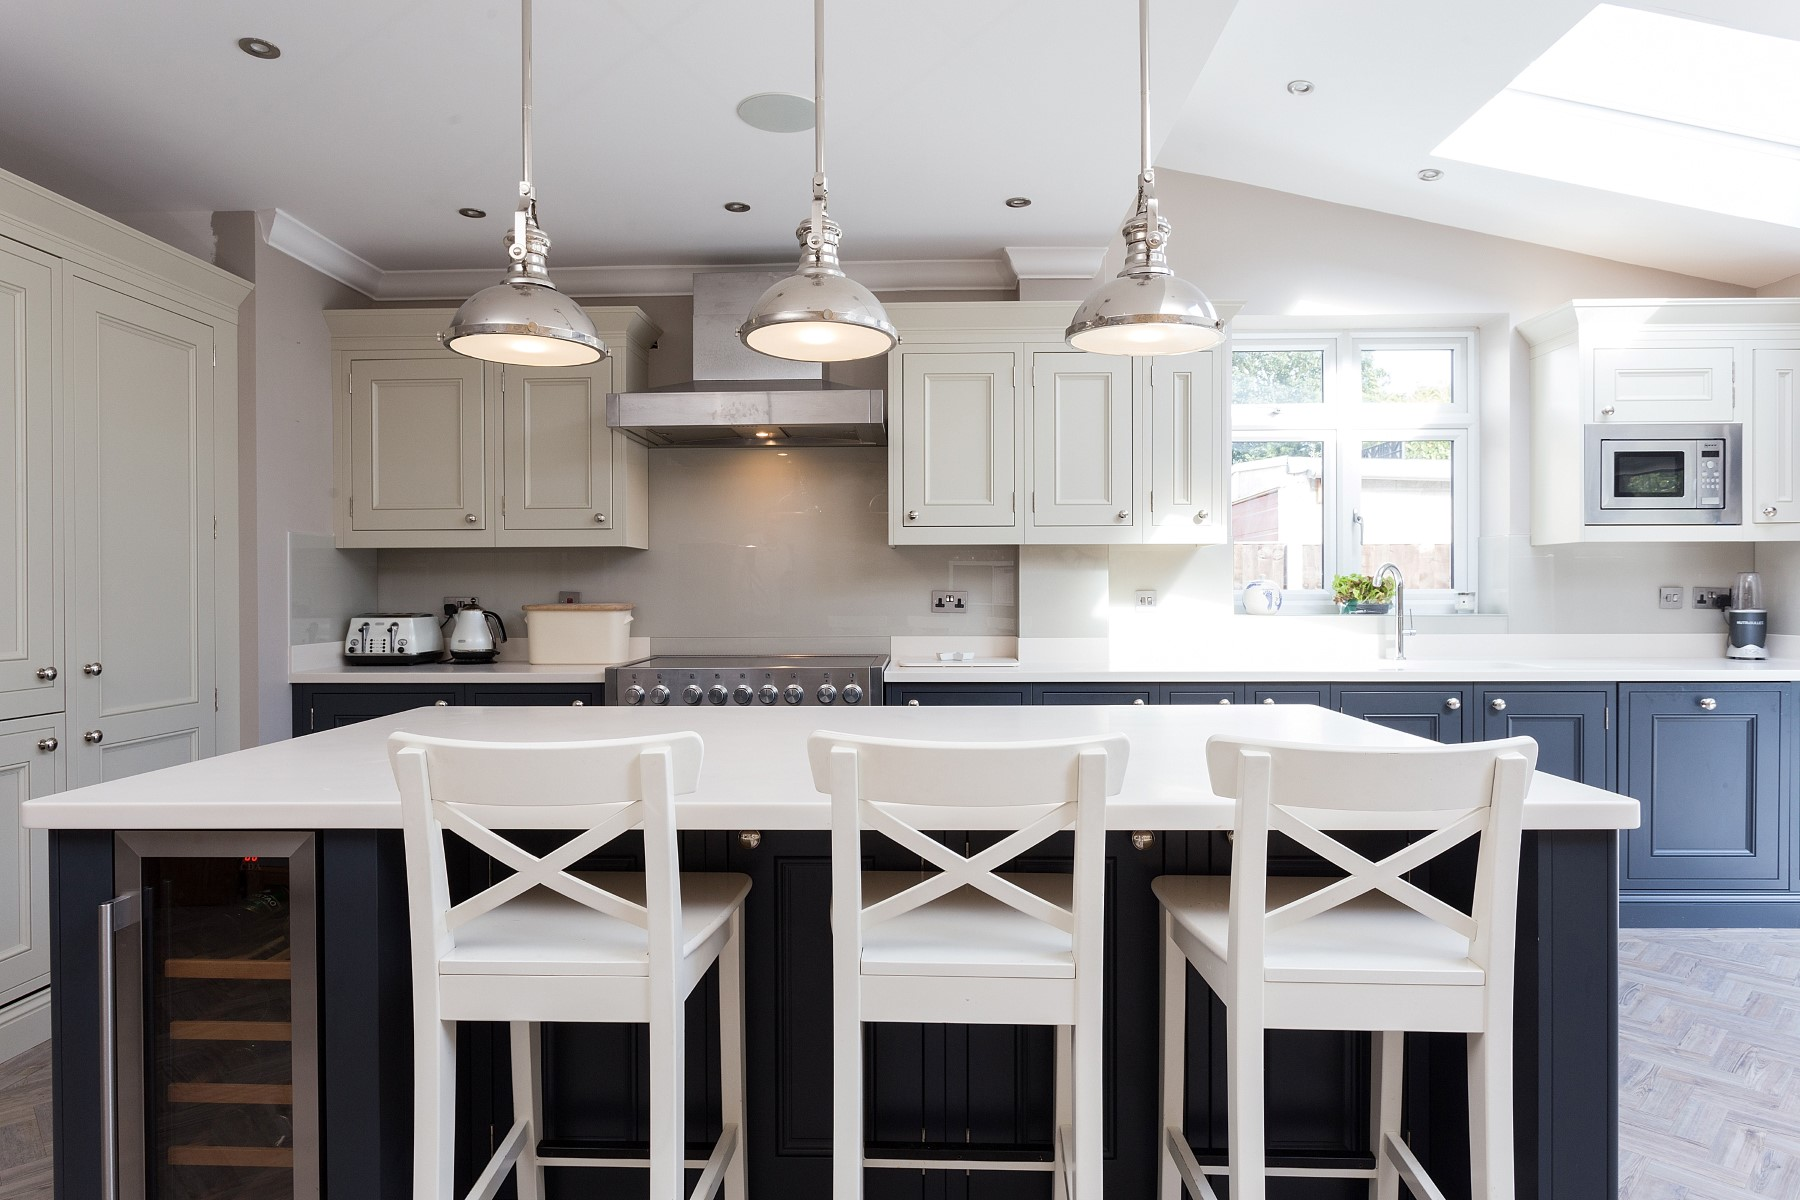 C&C kitchens Hertfordshire - Half Pencil & Scalloped in Charcoal & Almond